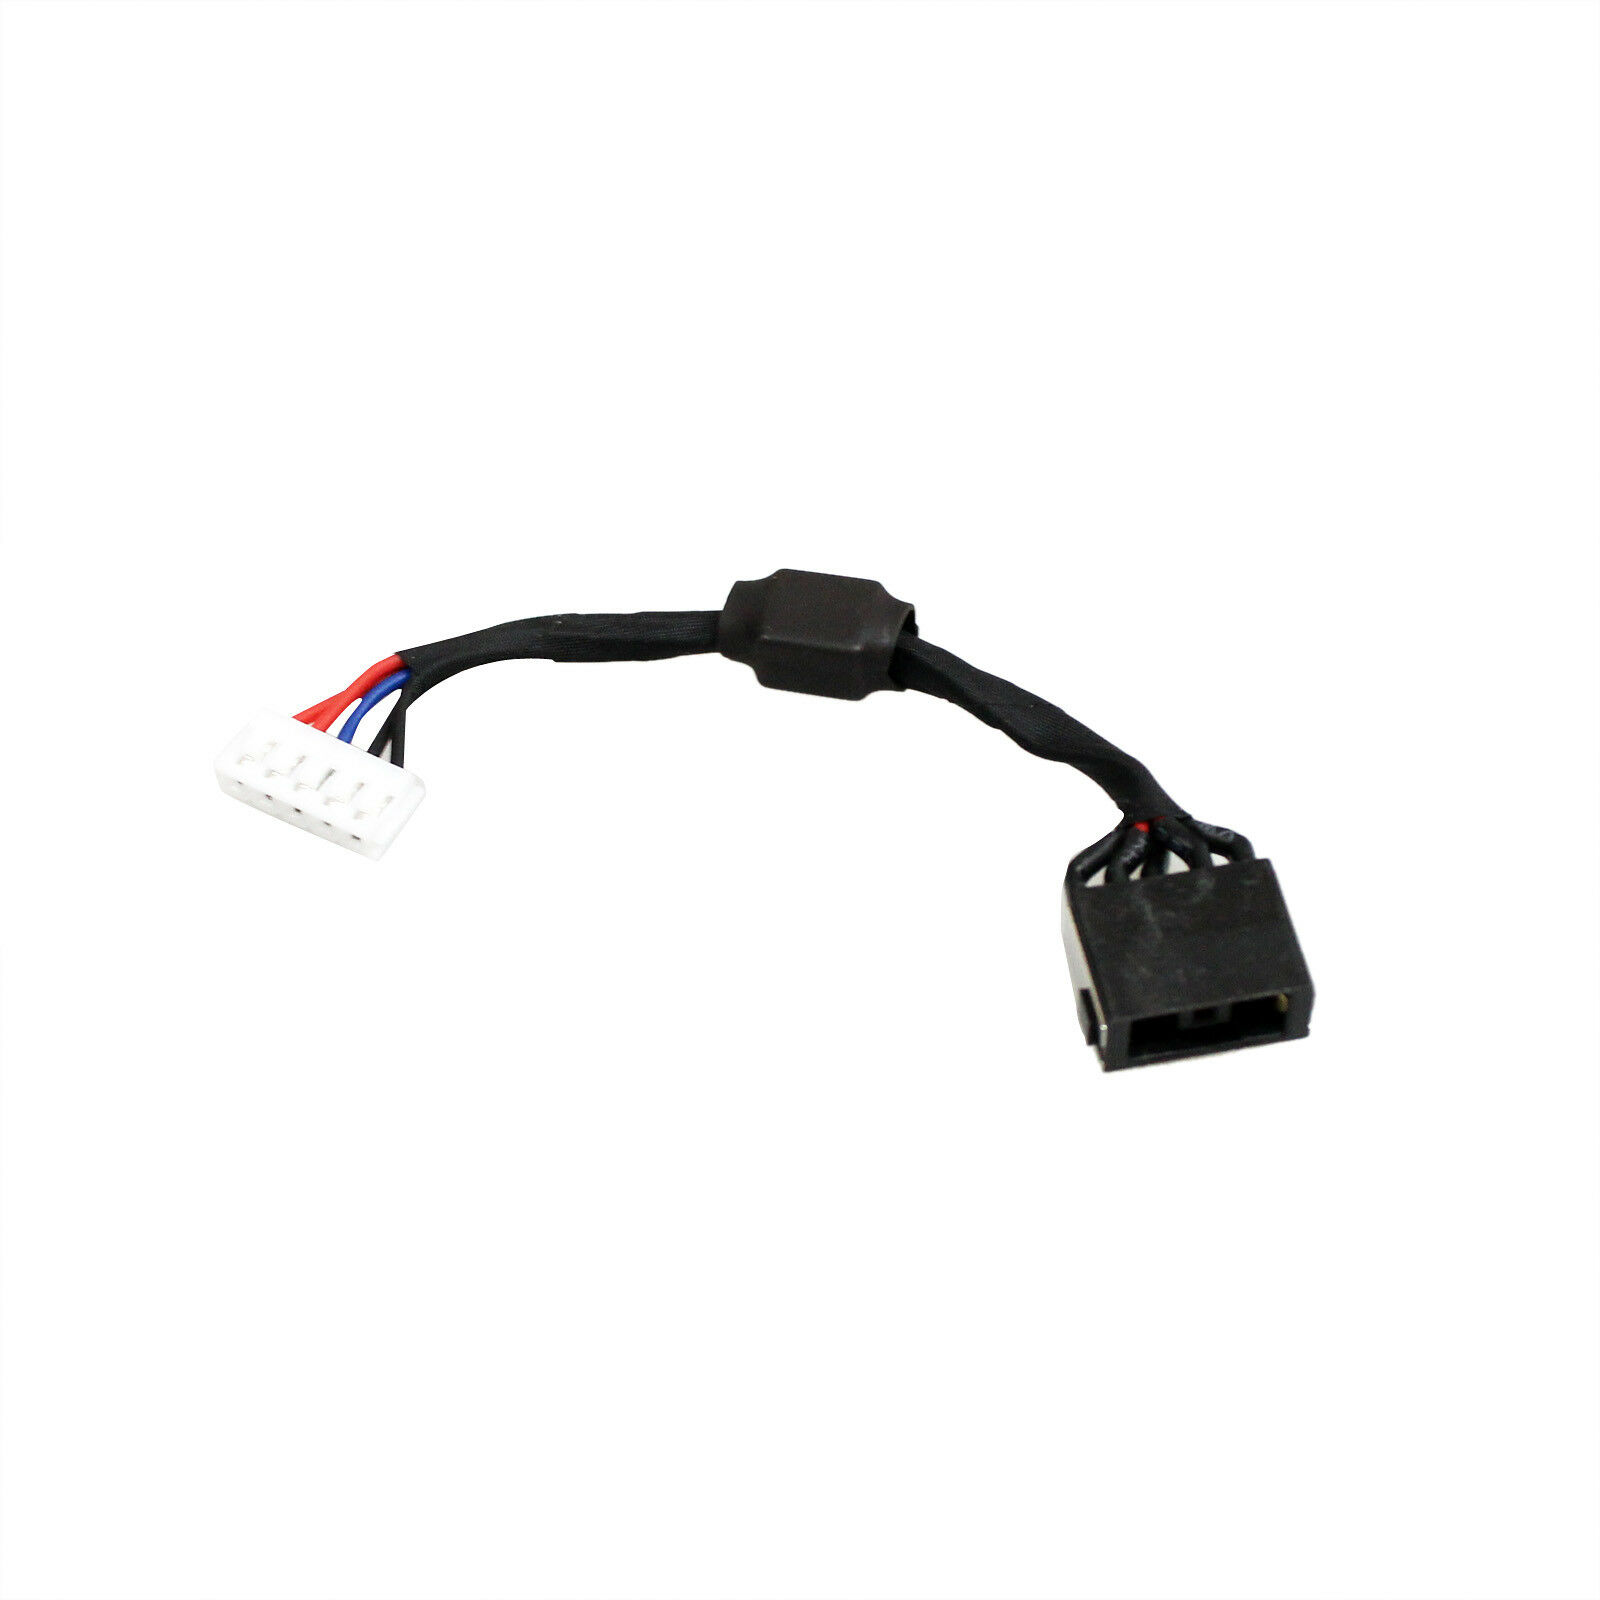 5C10K25519 Lenovo Y700-15ISK Dc in Jack Cable